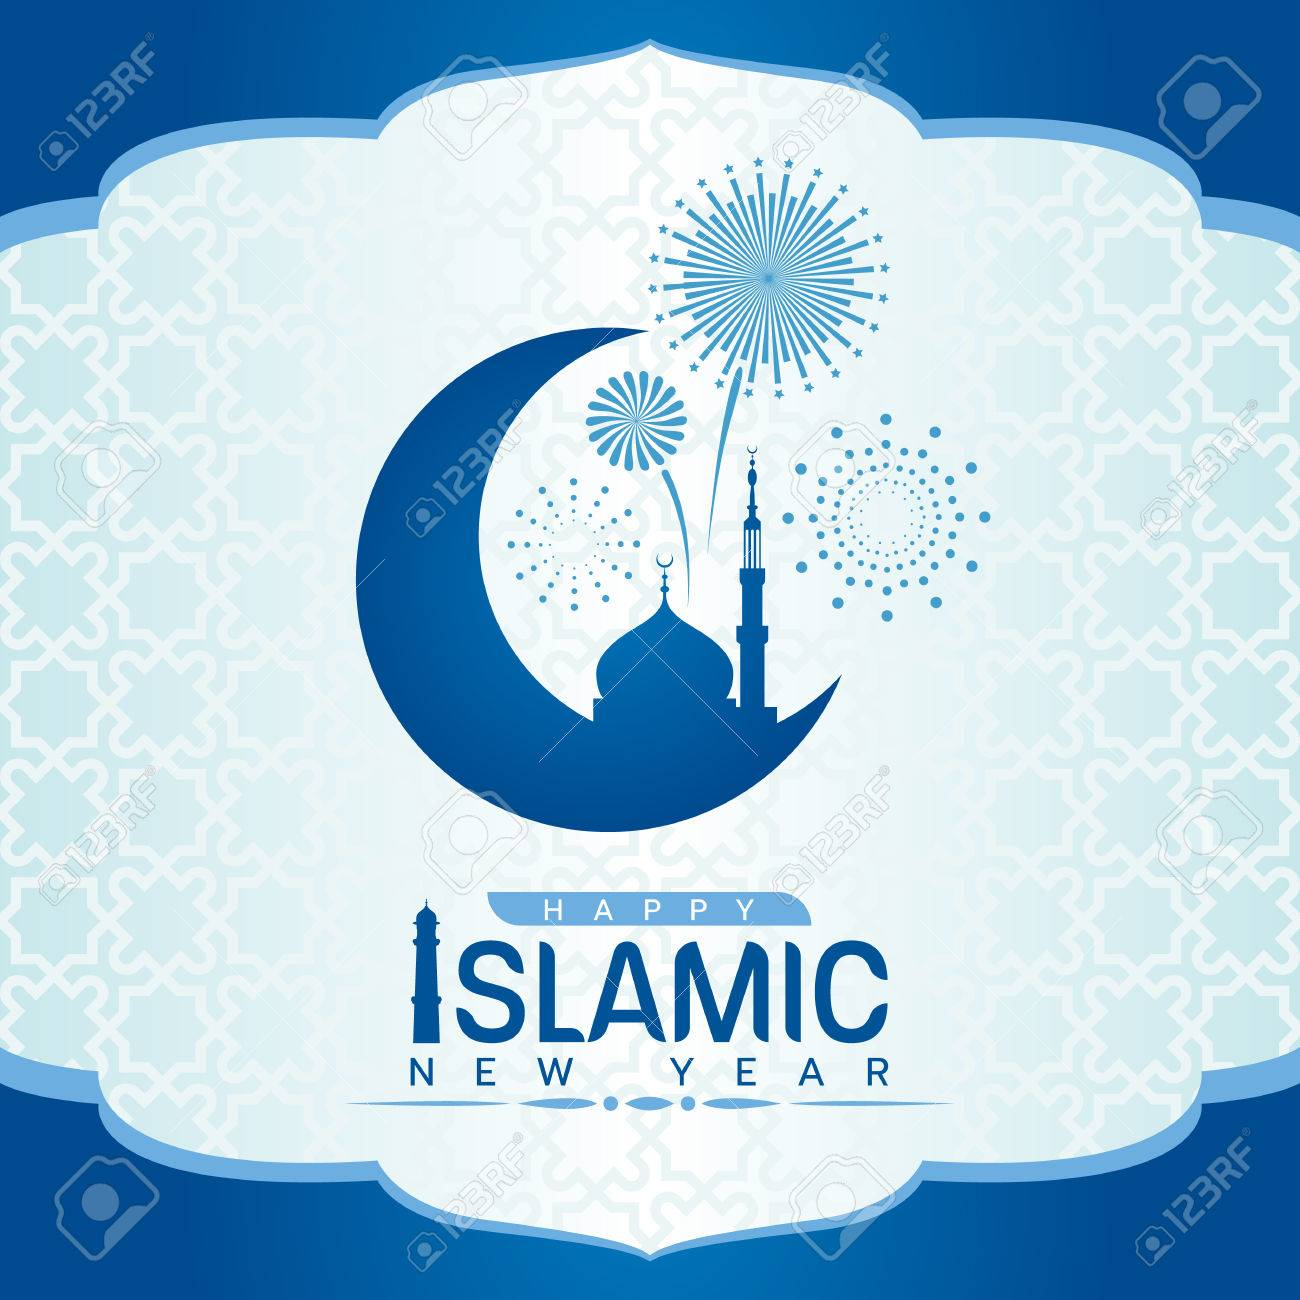 Happy Islamic new year with mosque on Crescent moon and firework